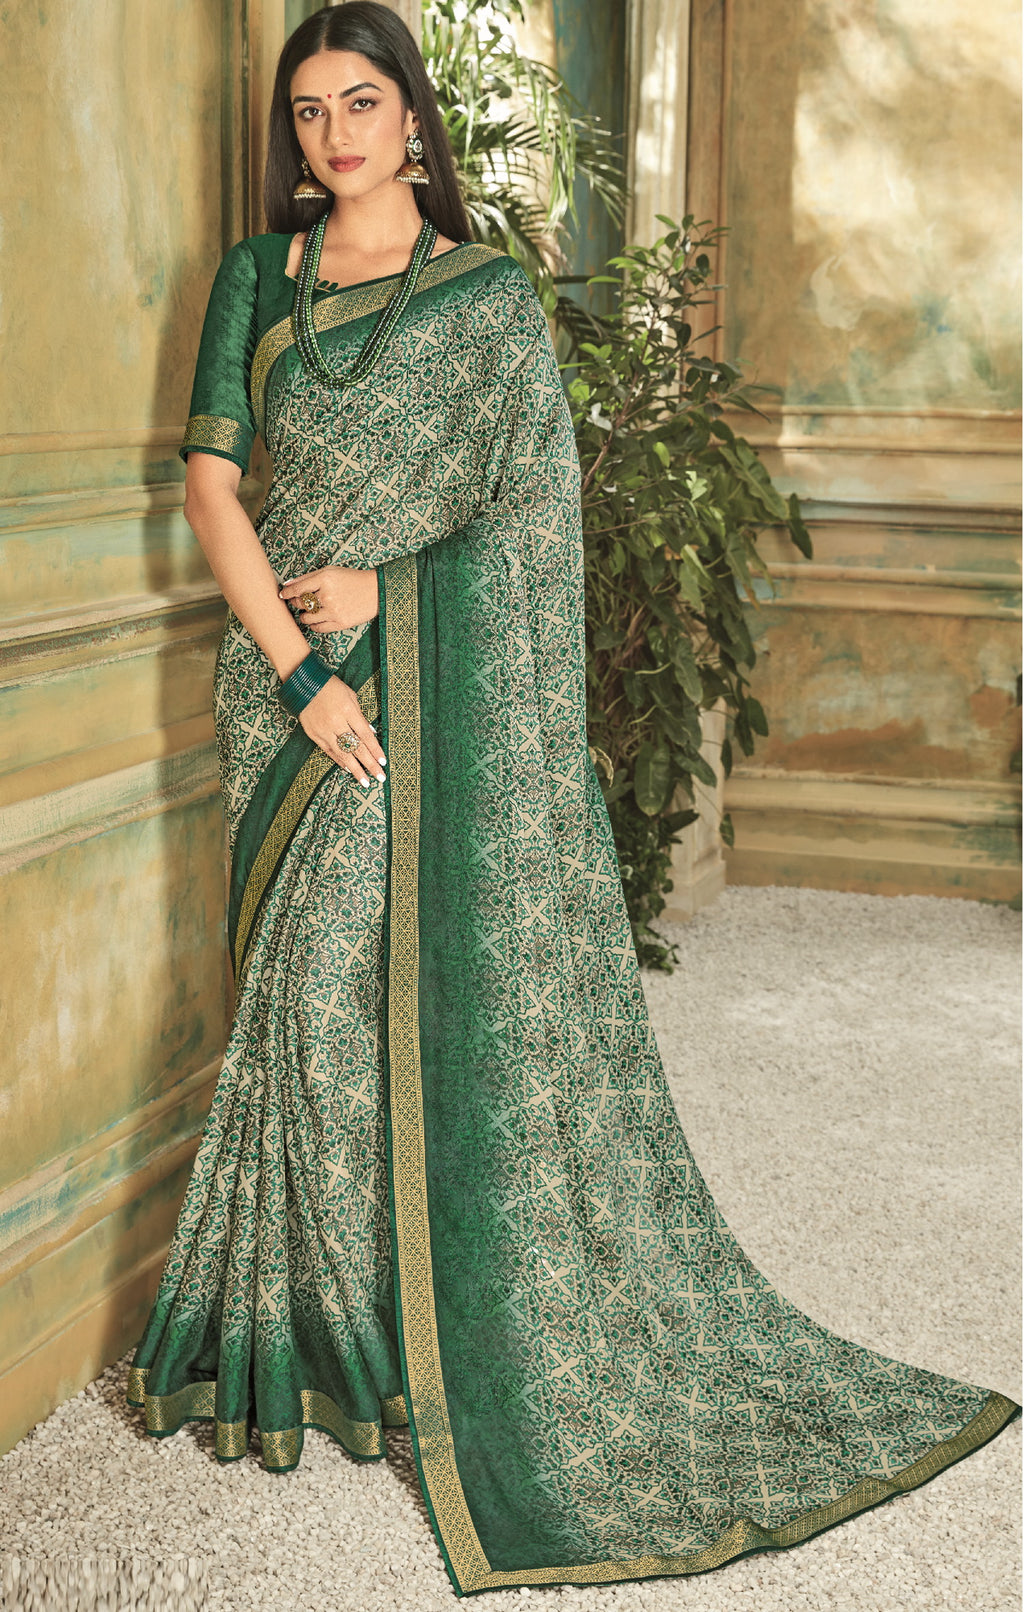 Cream & Green Color Georgette Youthful Kitty Party Sarees NYF-5676